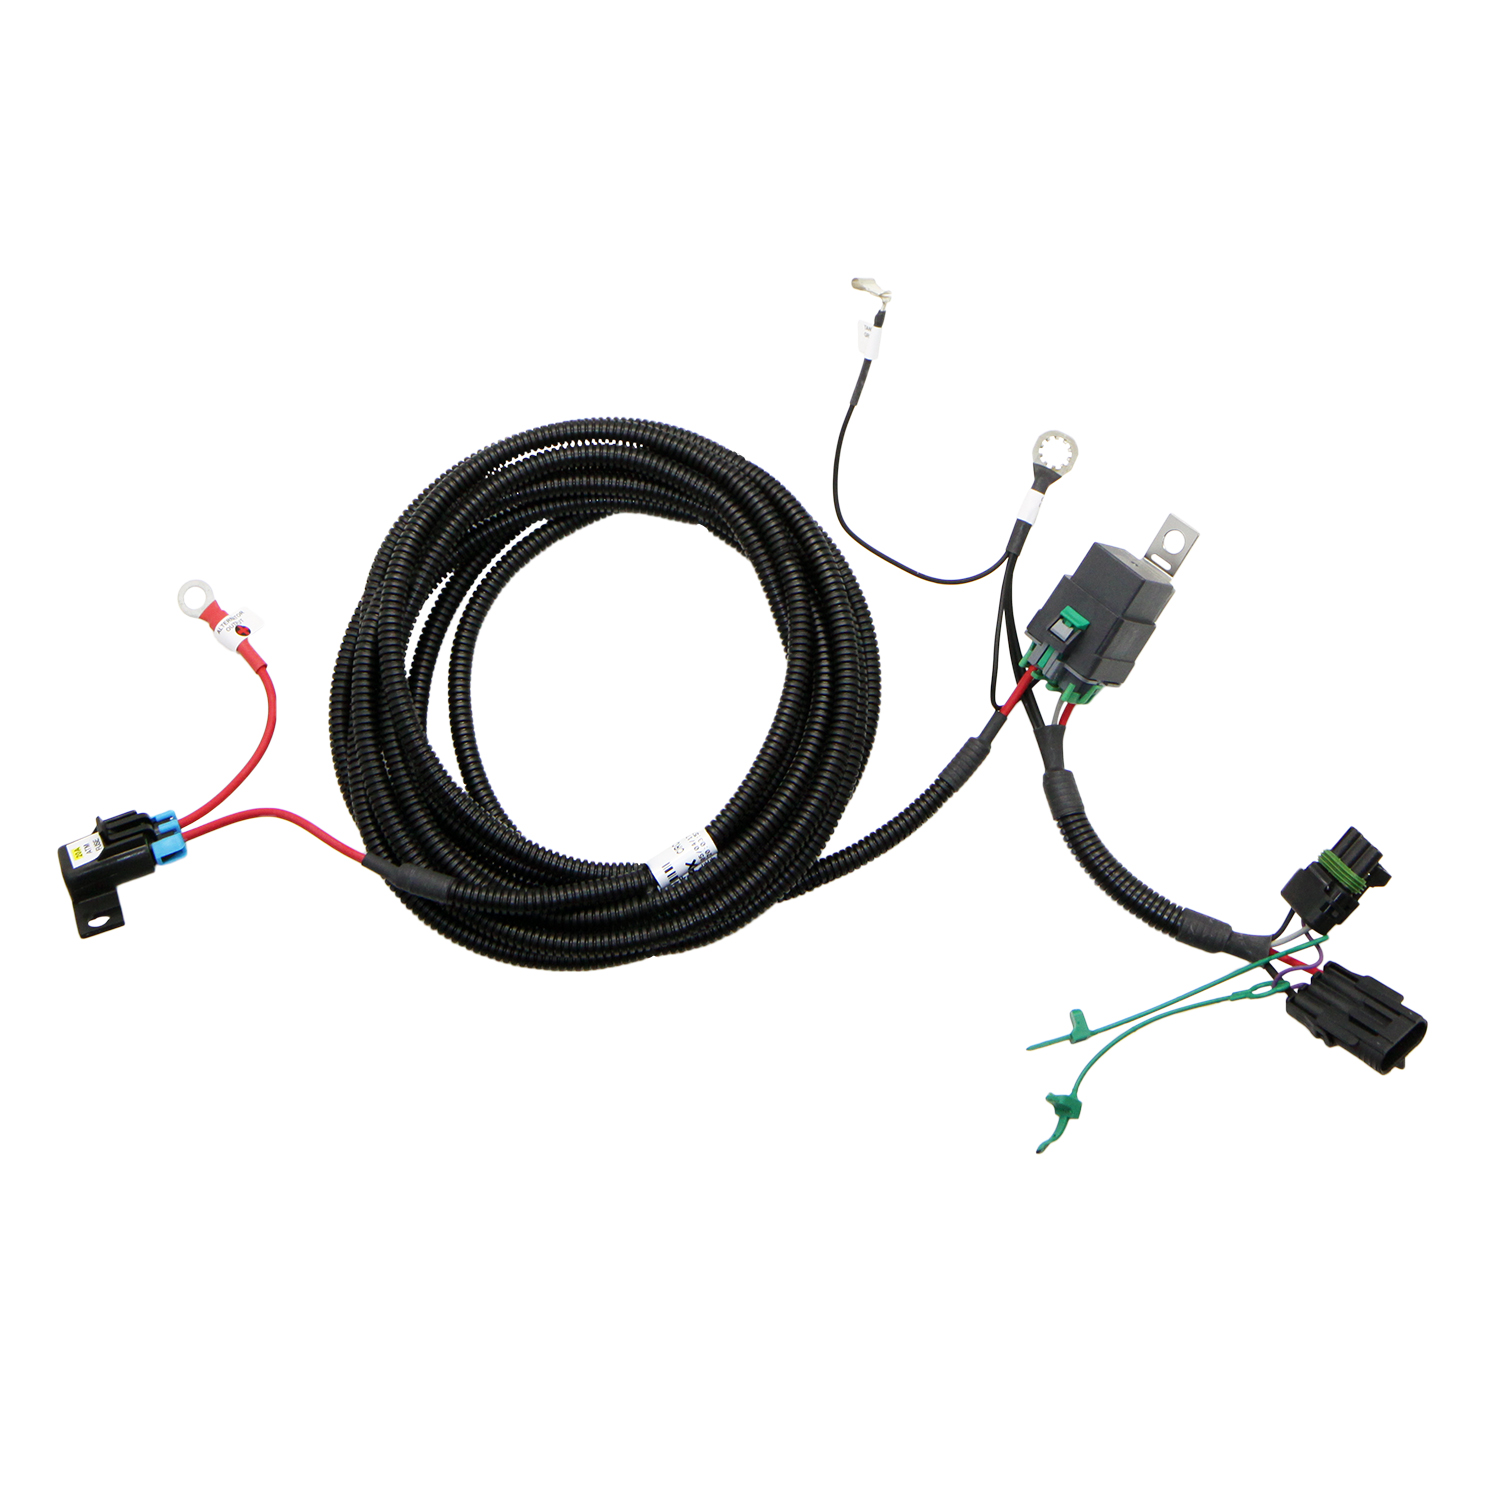 Black Wire Harness Smart Wiring Electrical Diagram Loom With Cable To Ac Plug Connector Assembly On